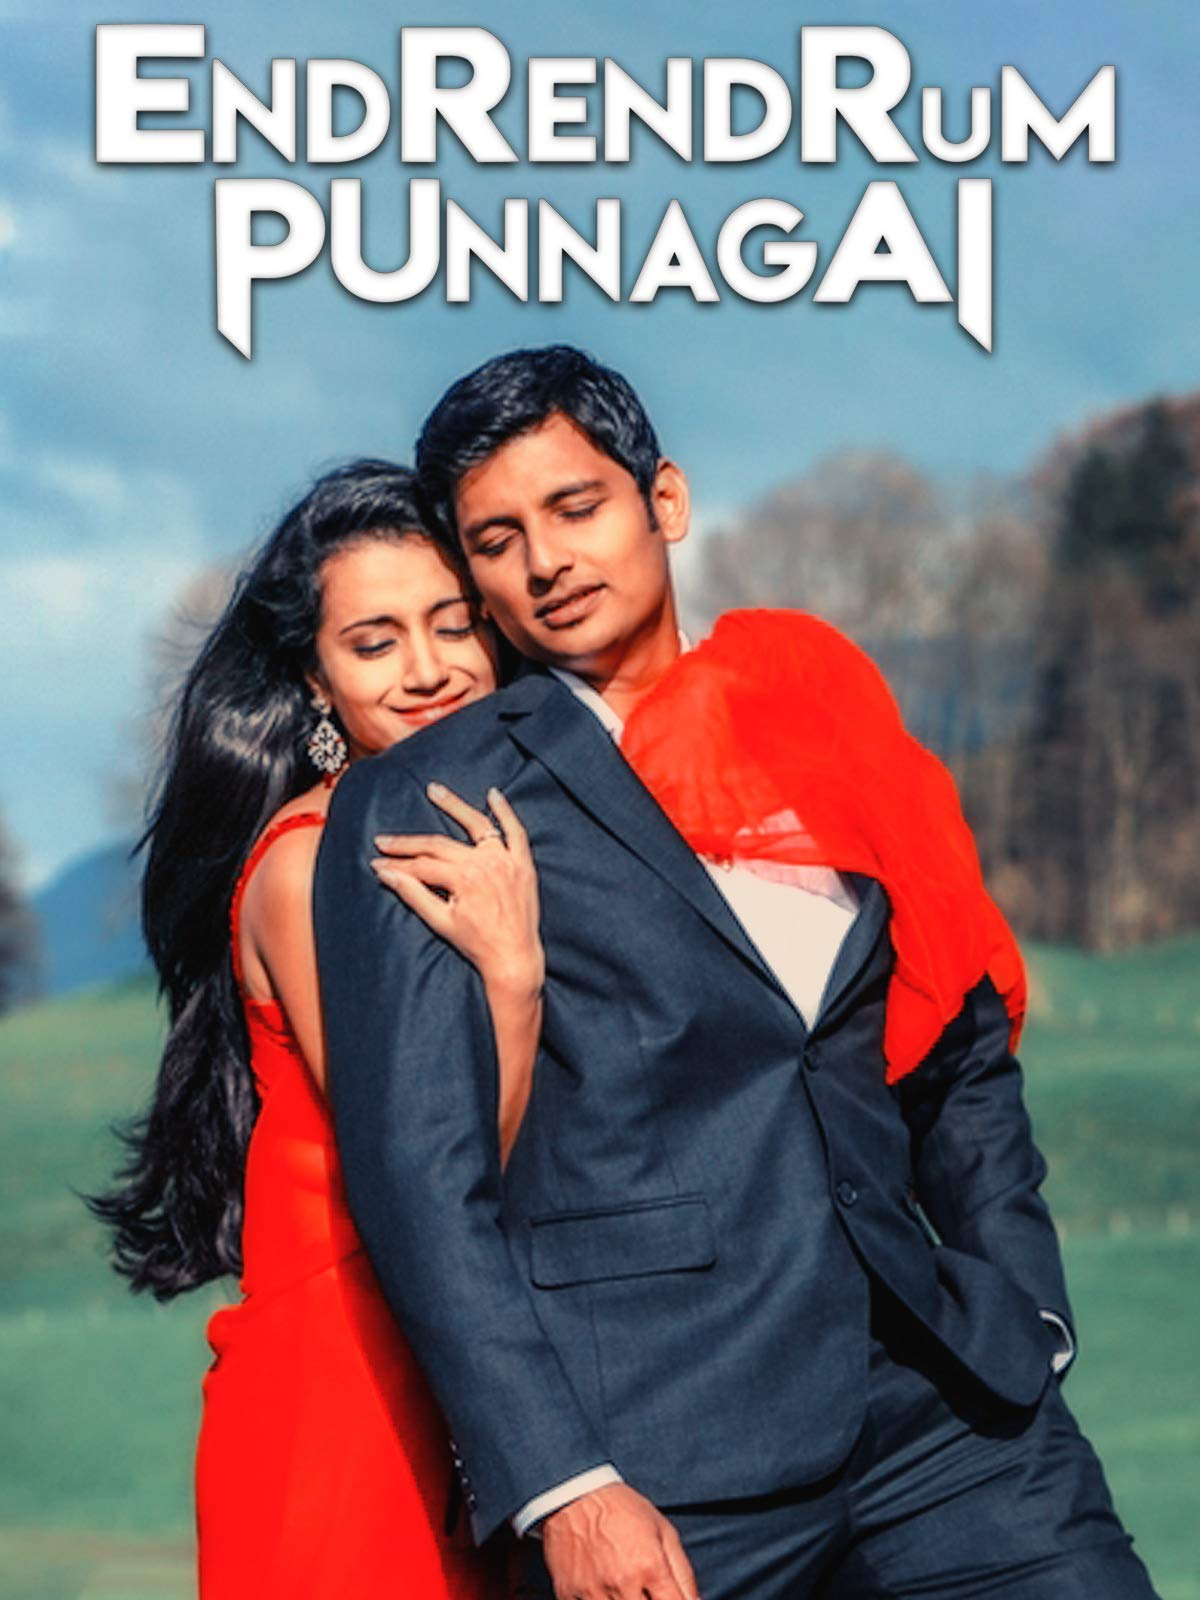 endrendrum punnagai songs download